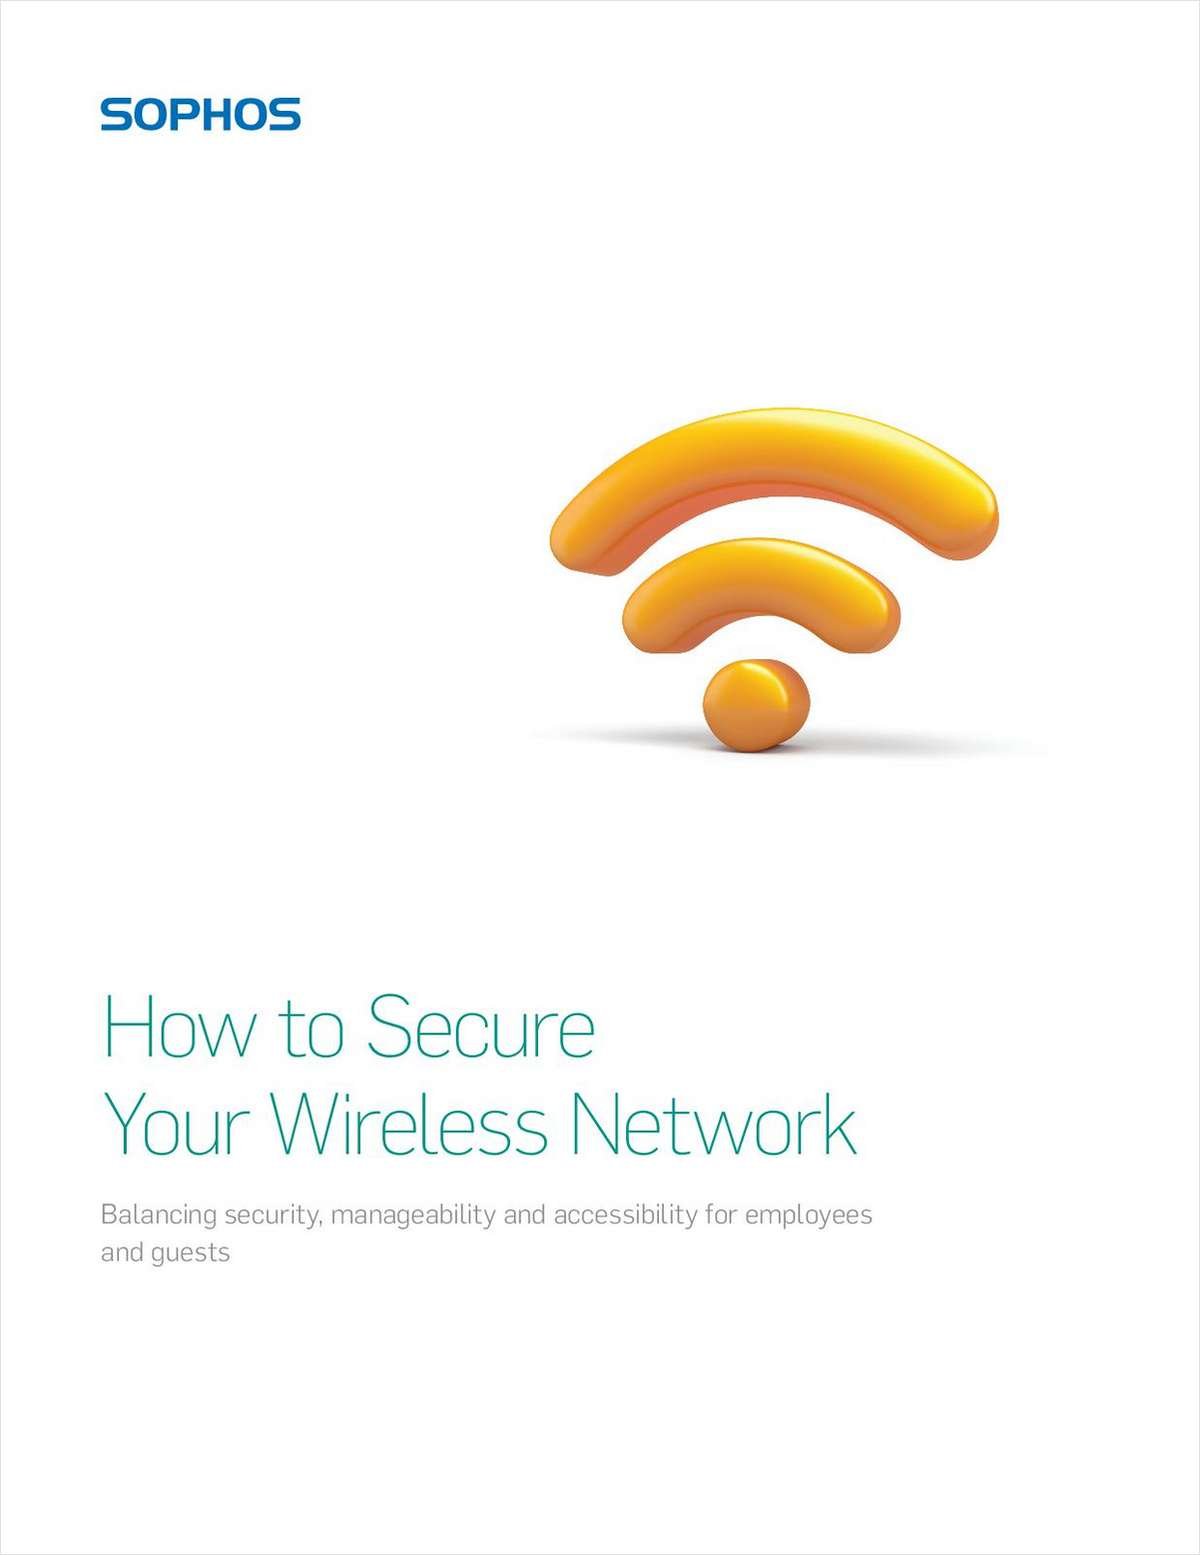 How to Secure Your Wireless Network